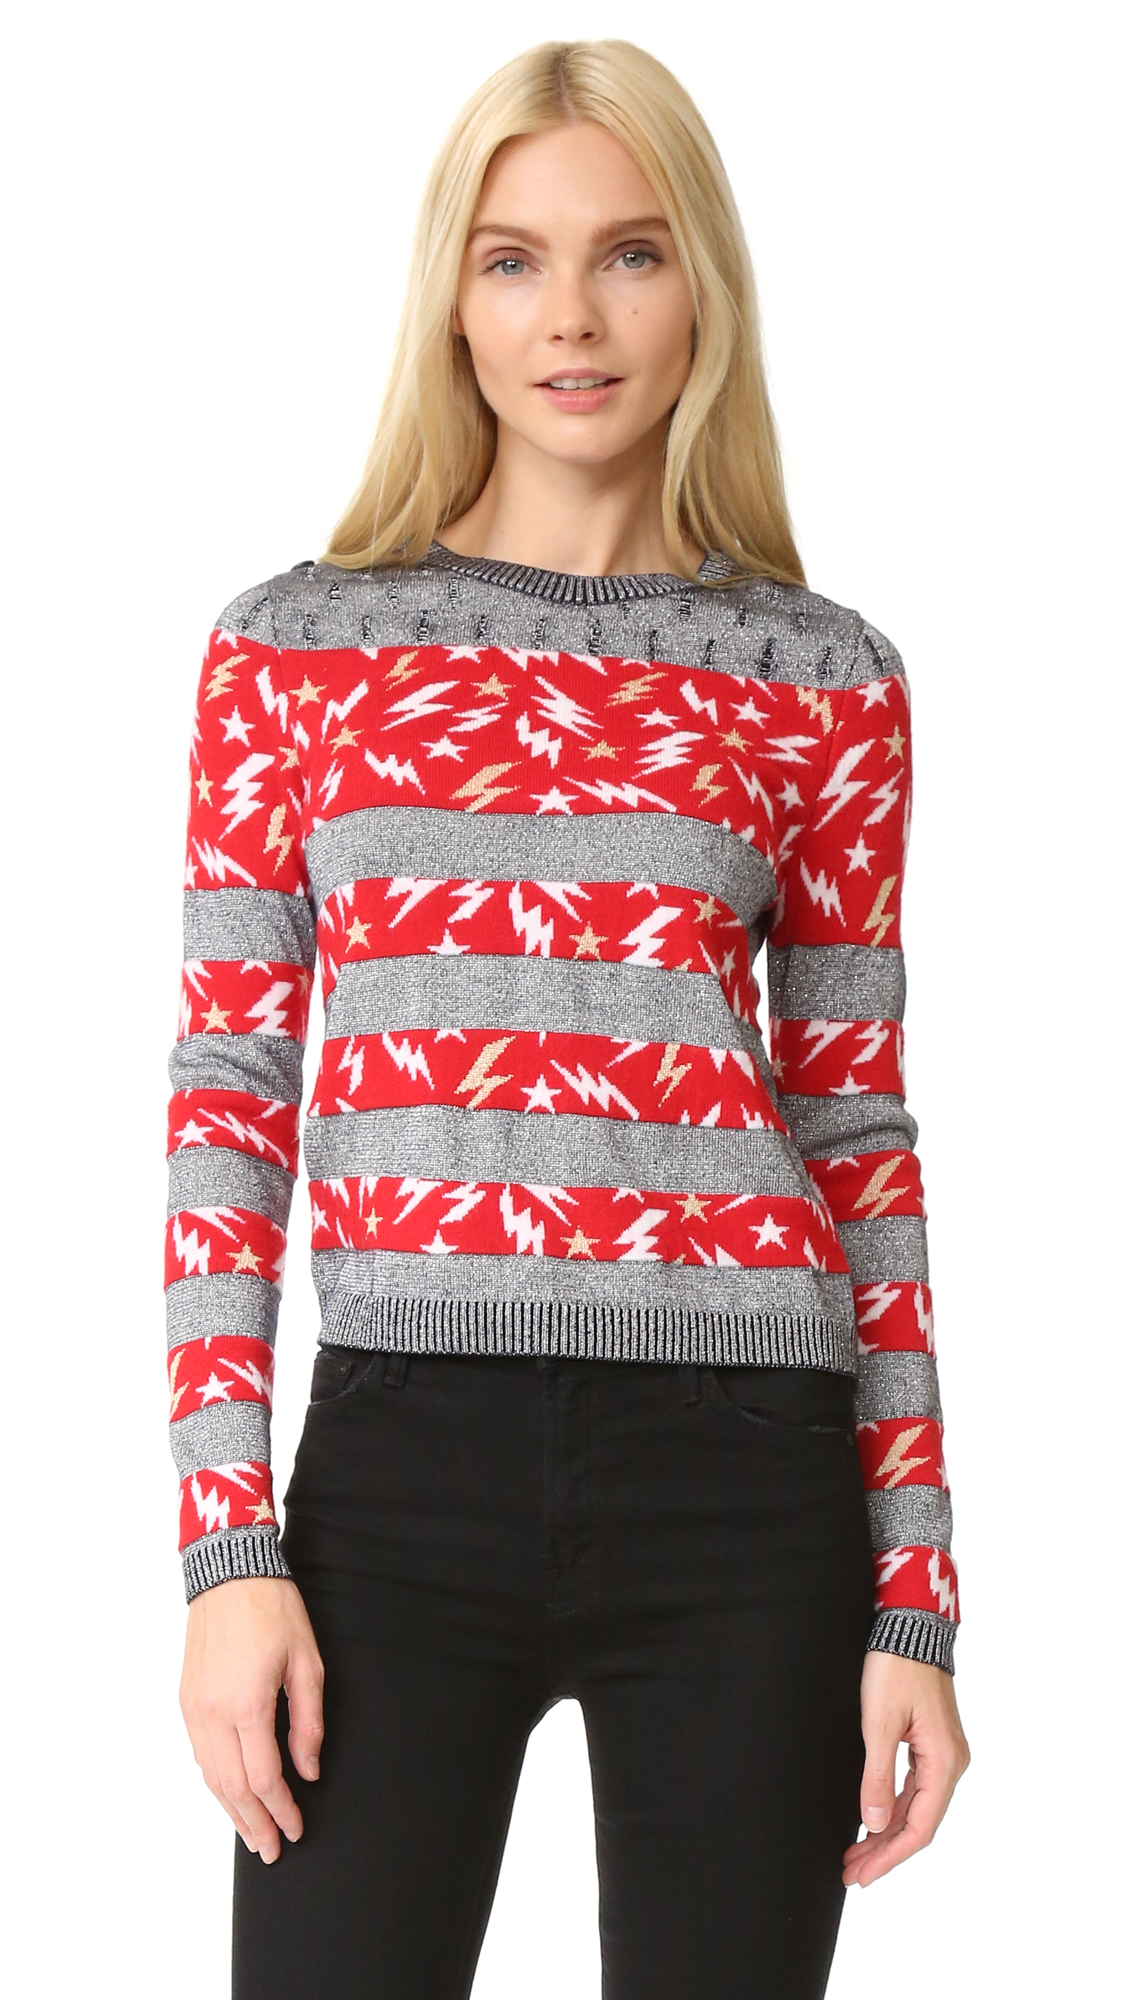 Just Cavalli Lightning Stripe Sweater - Blue Navy Jacquard